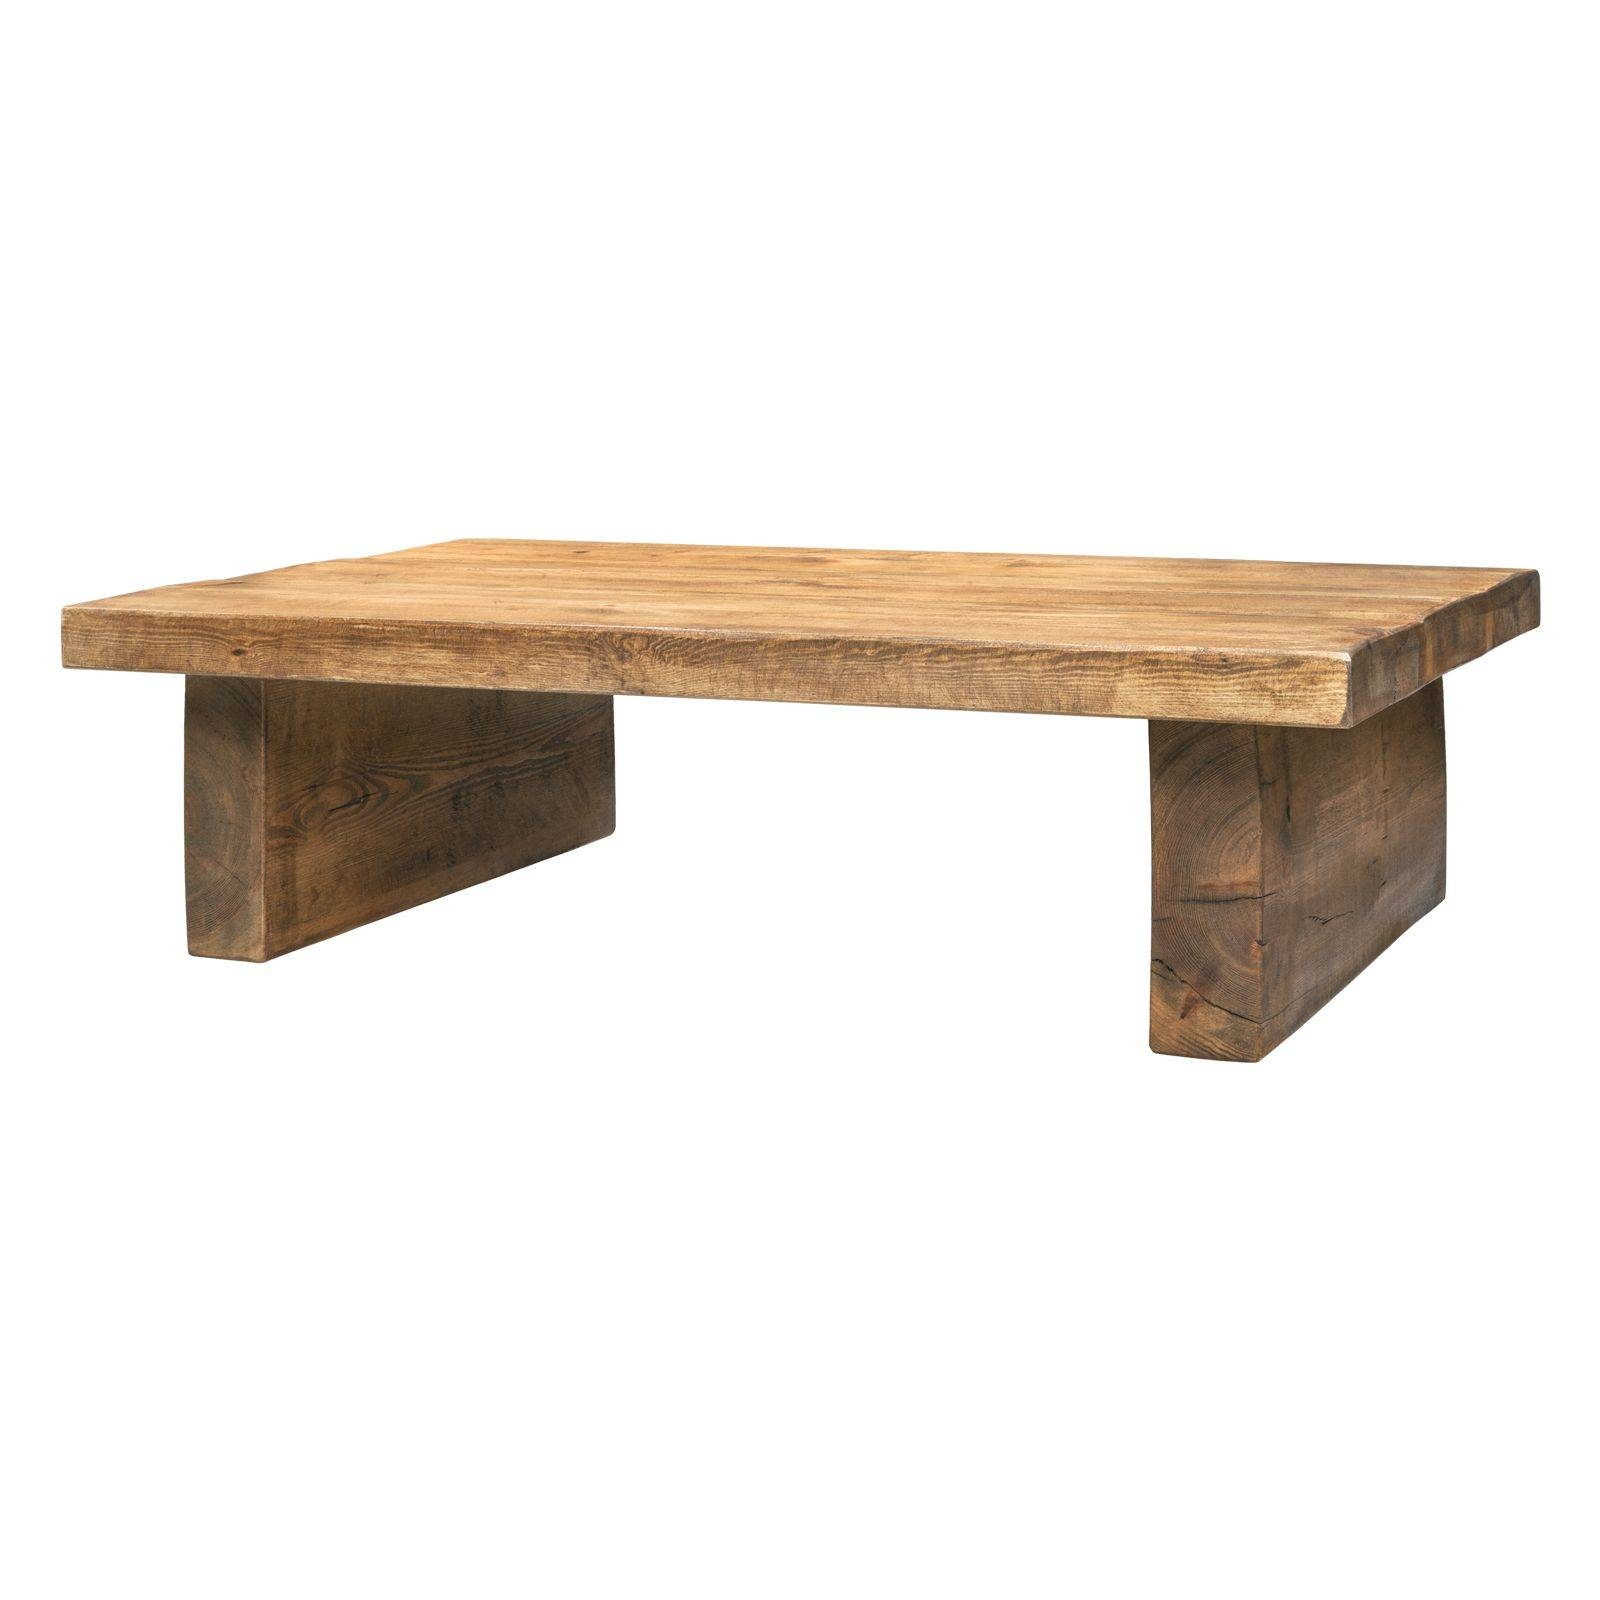 Coffee Table - Low 2 Inch Top 2 Leg | Funky Chunky Furniture throughout Low Wood Coffee Tables (Image 3 of 15)